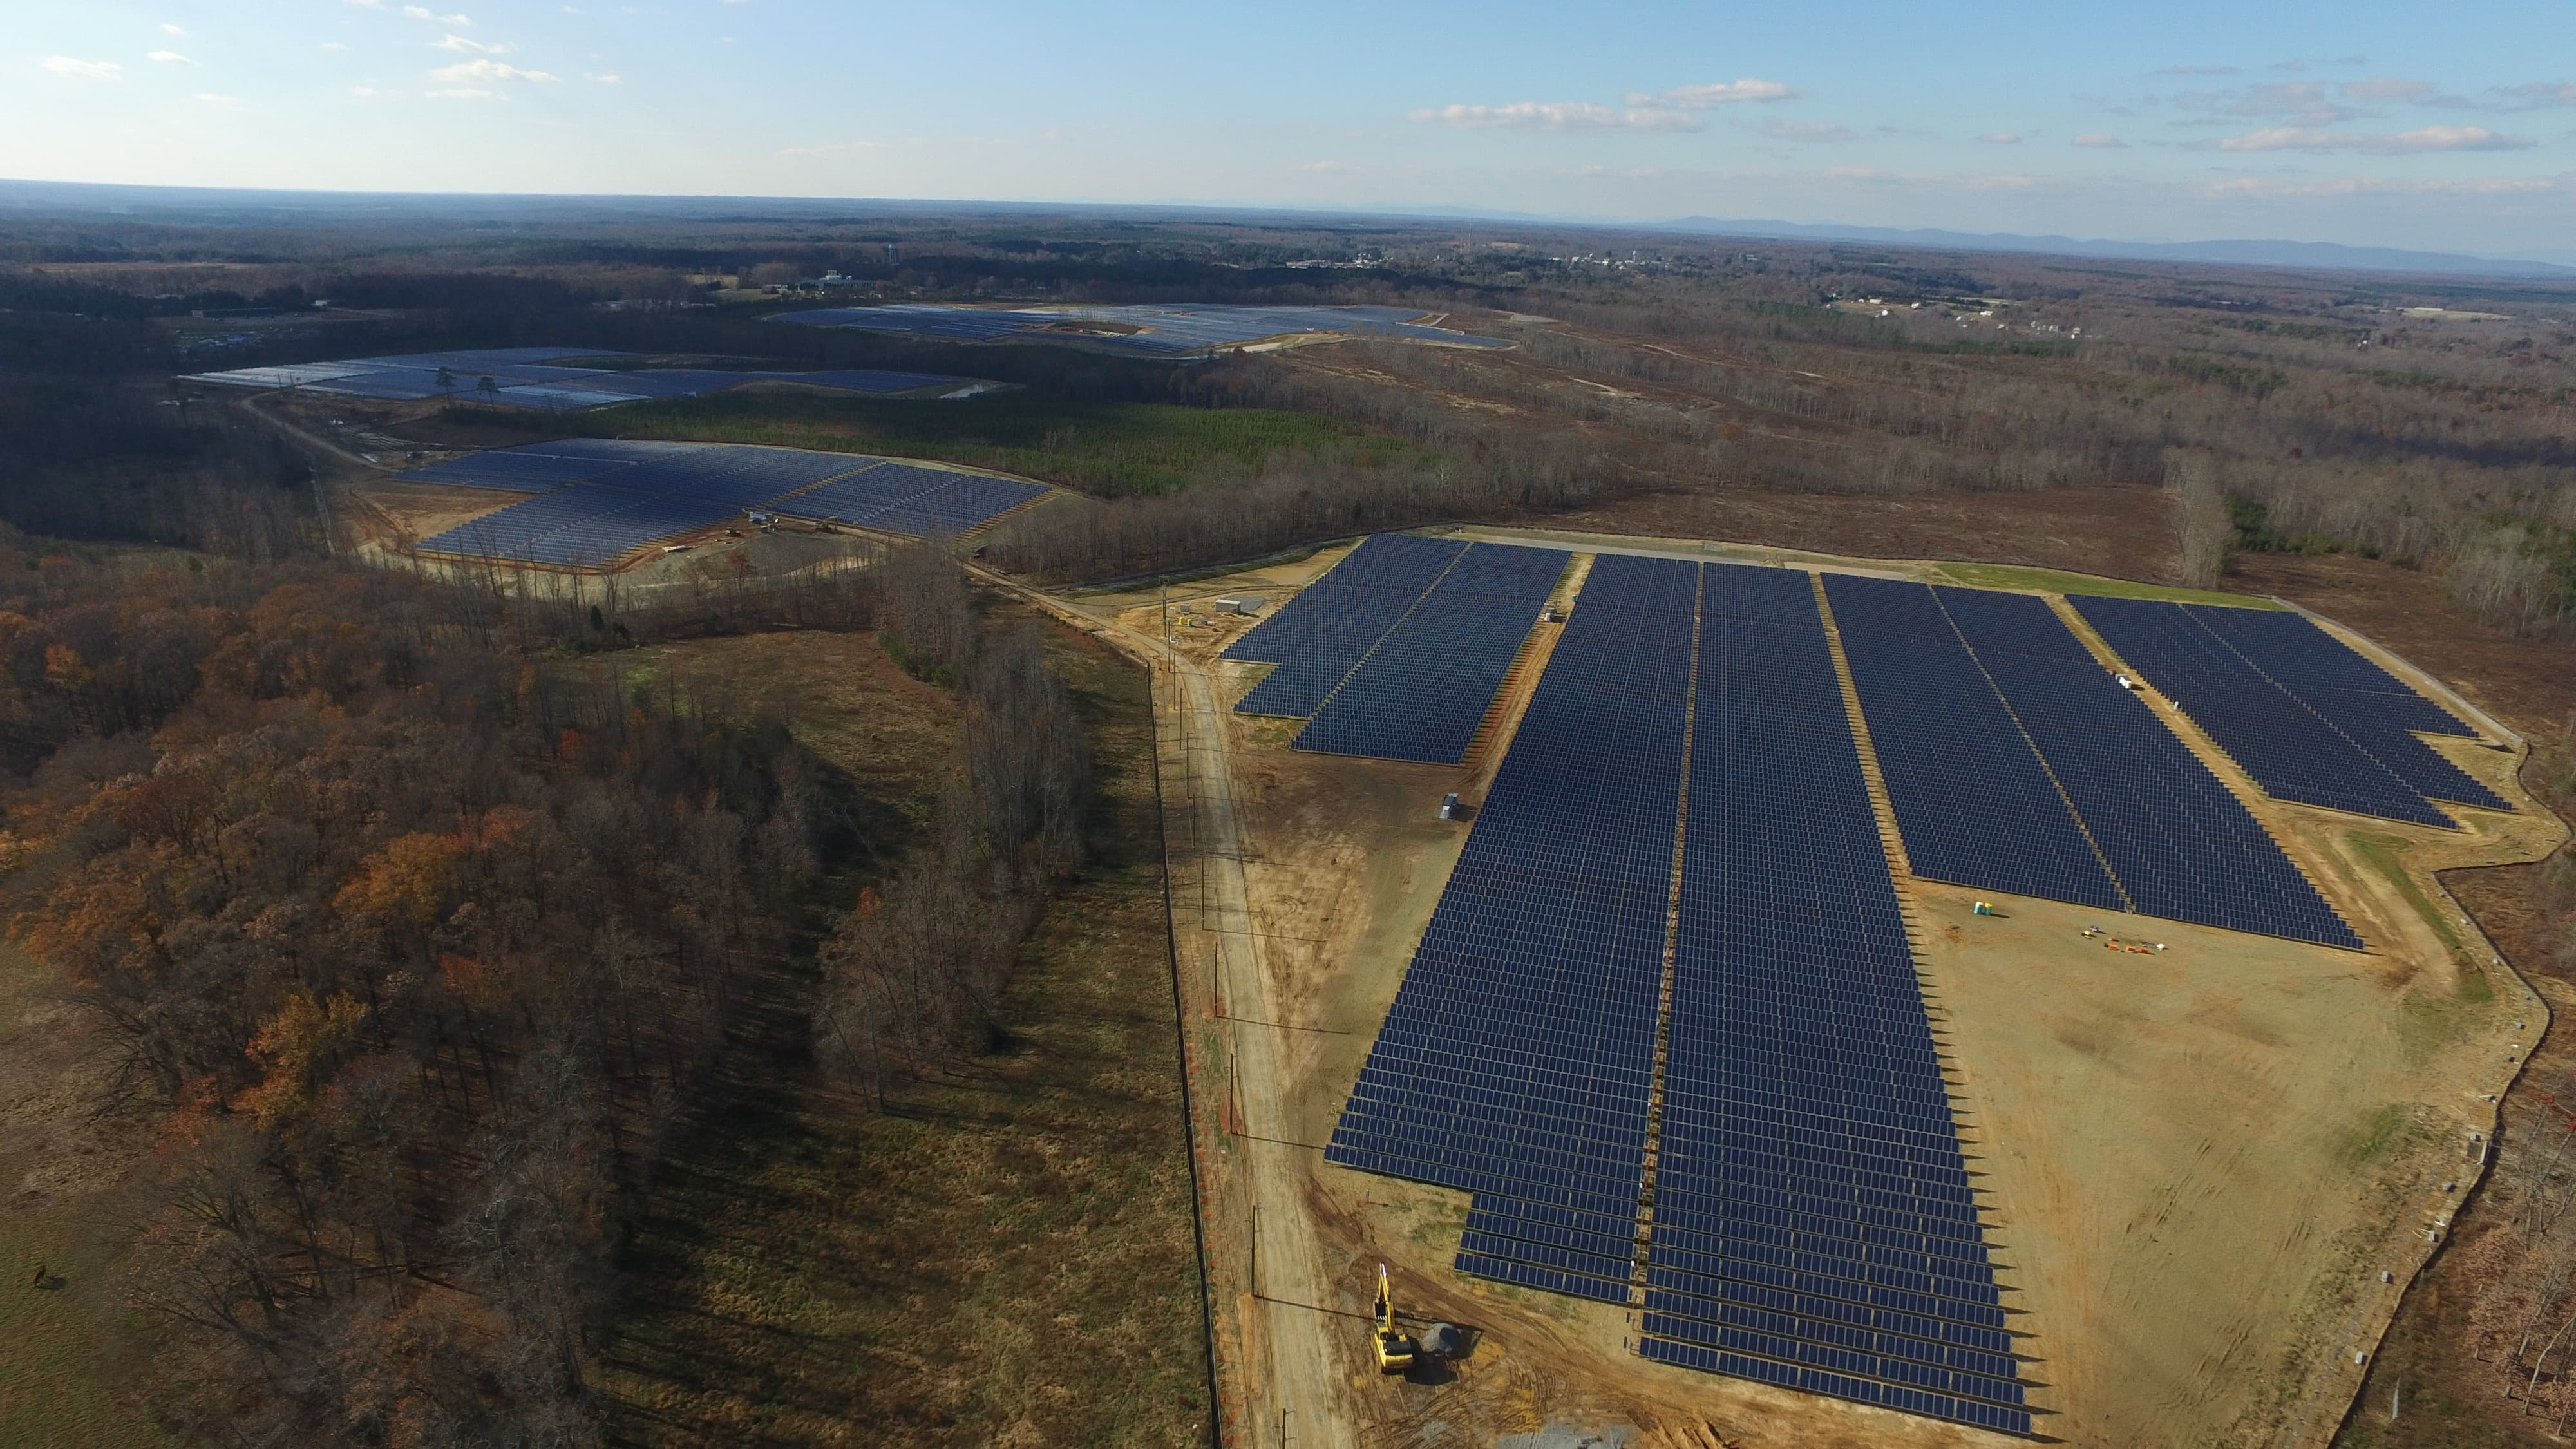 Louisa Dominion Adds 56 MW More Of Solar In Virginia